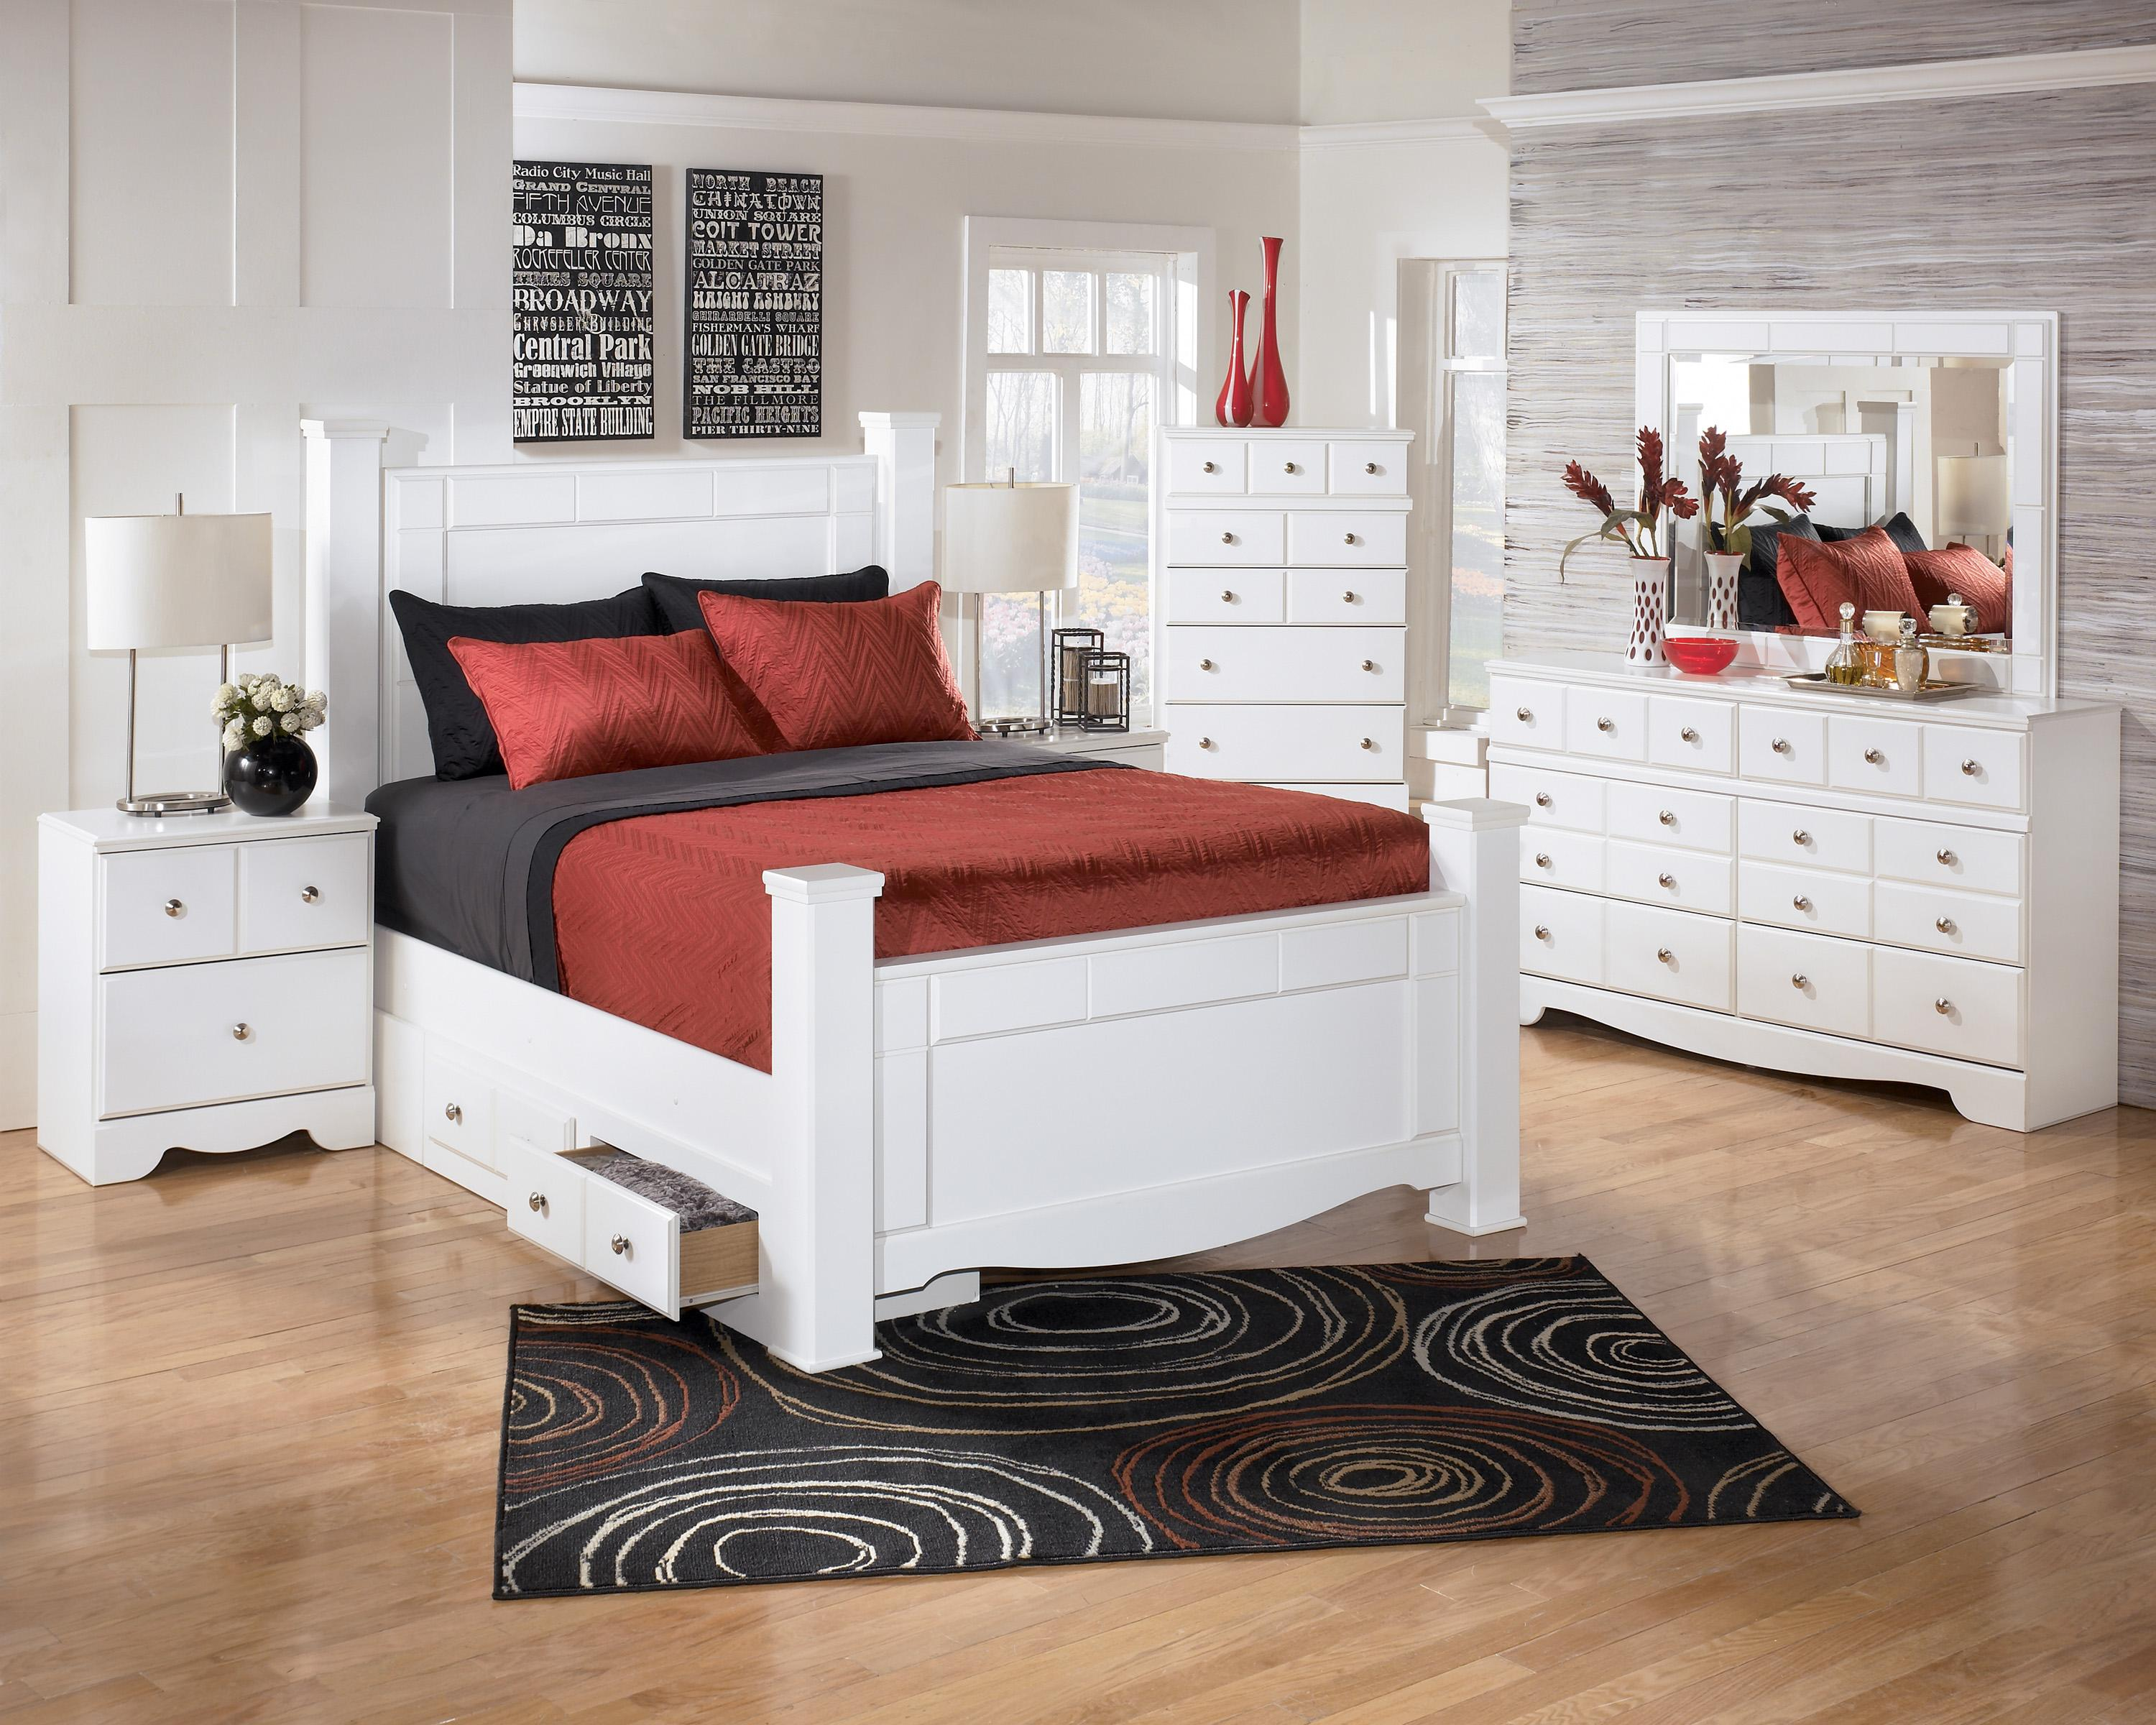 Signature design by ashley weeki queen poster bed with underbed storage becker furniture world Queen bedroom sets with underbed storage